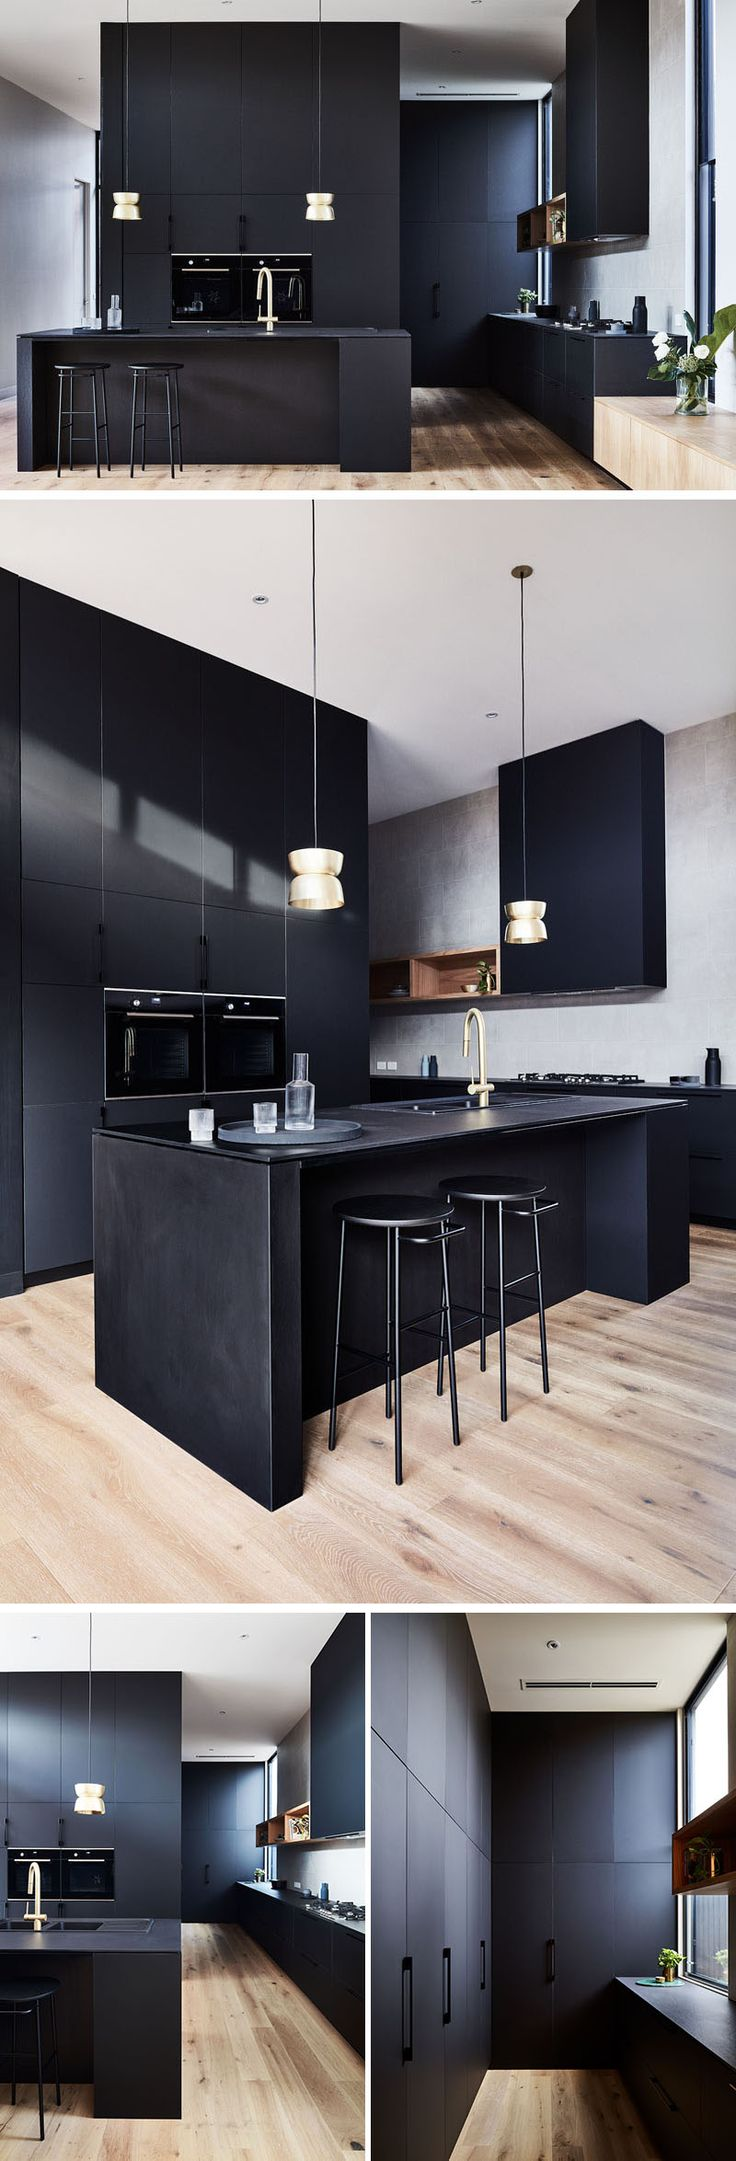 A matte black kitchen with minimal hardware